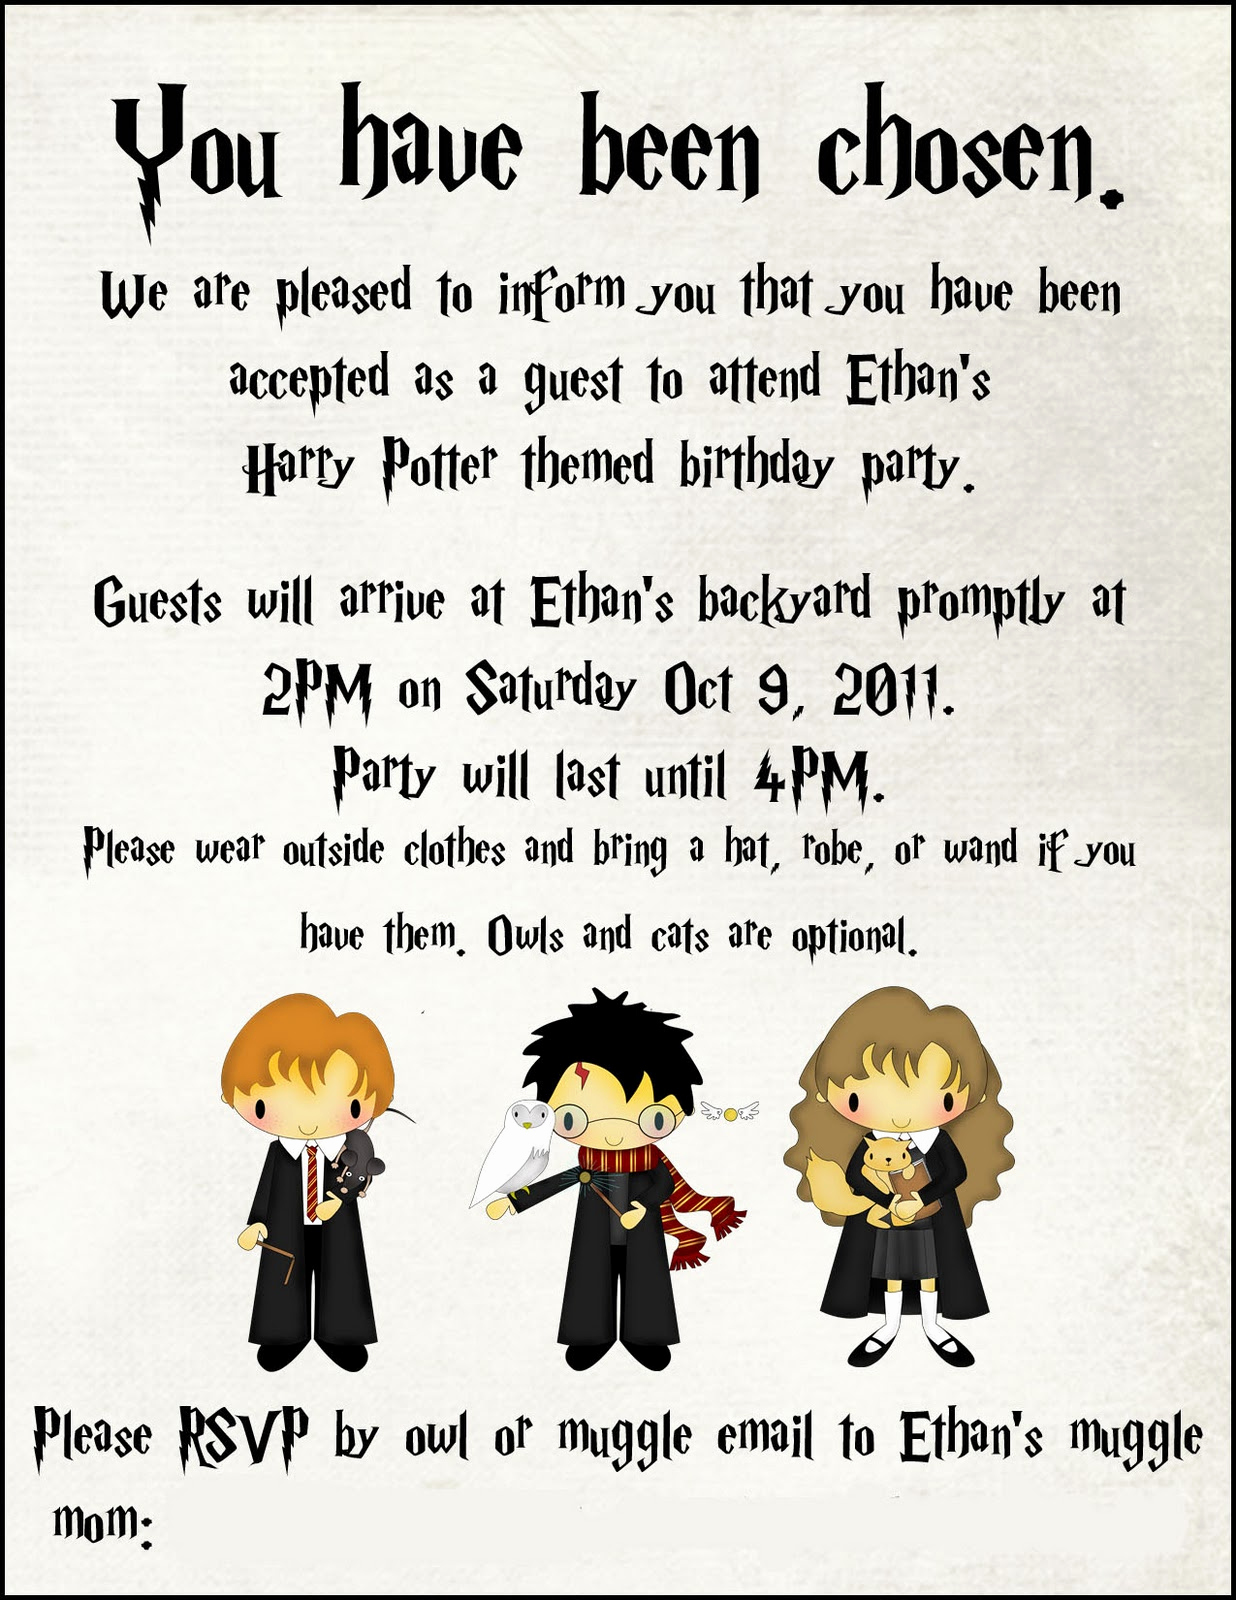 Harry Potter Birthday Invitation Wording Unique toad S Treasures Lifestyle Family Blog by Emily ashby